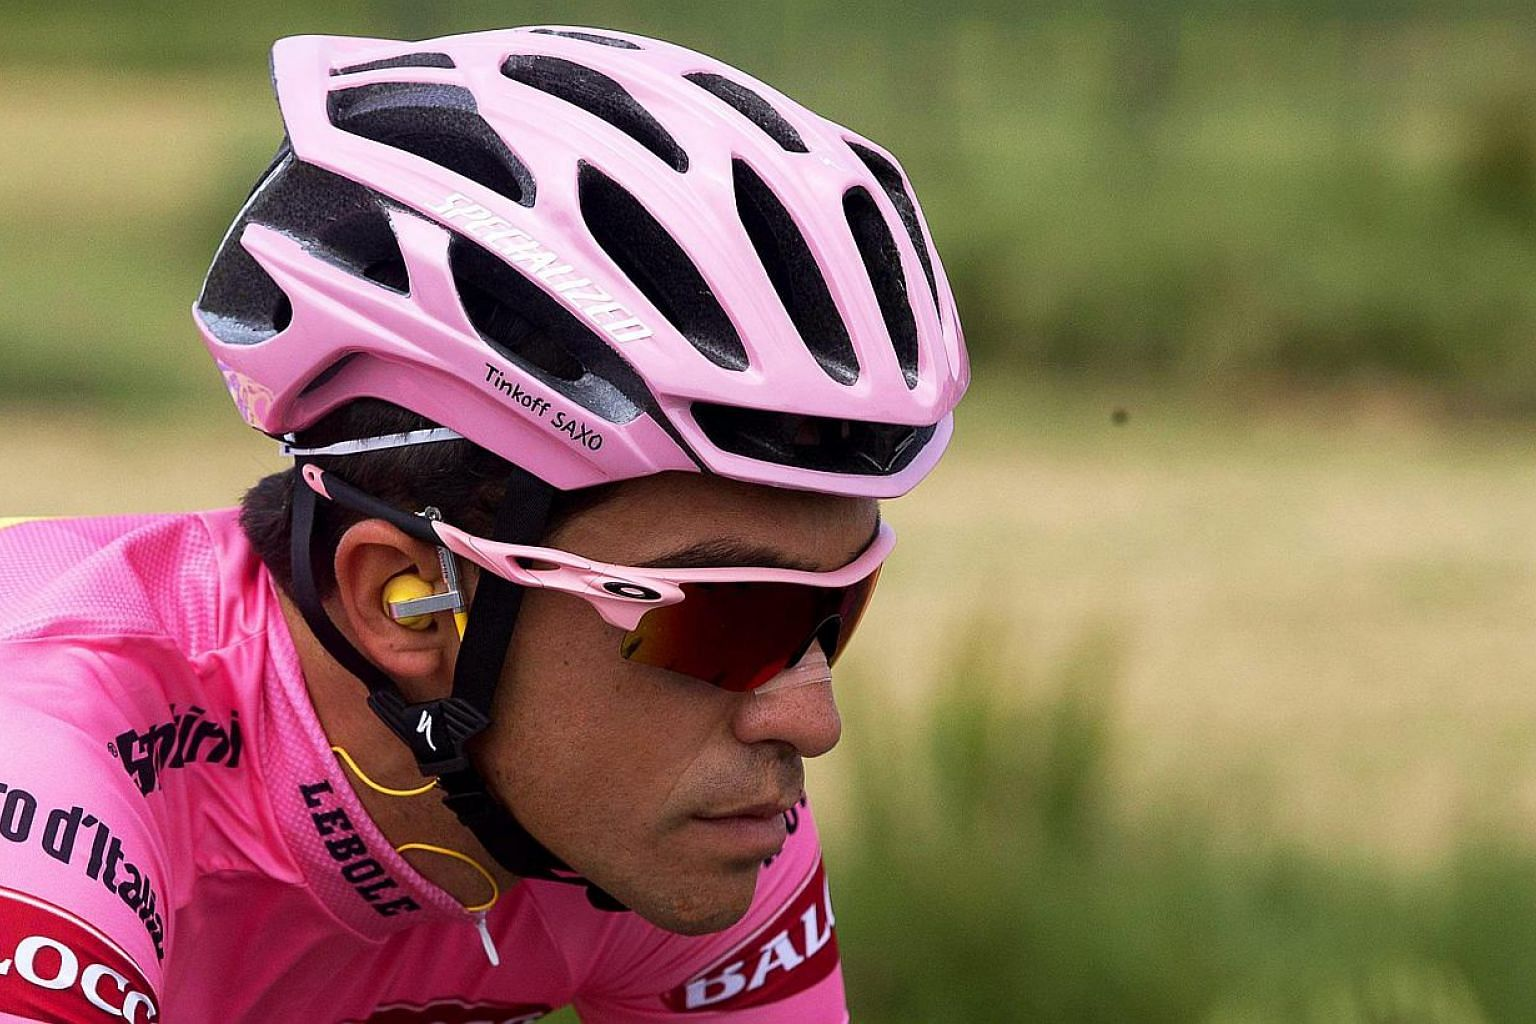 Spanish rider Alberto Contador during the sixth stage of the 98th Giro d'Italia cycling tour. -- PHOTO: EPA